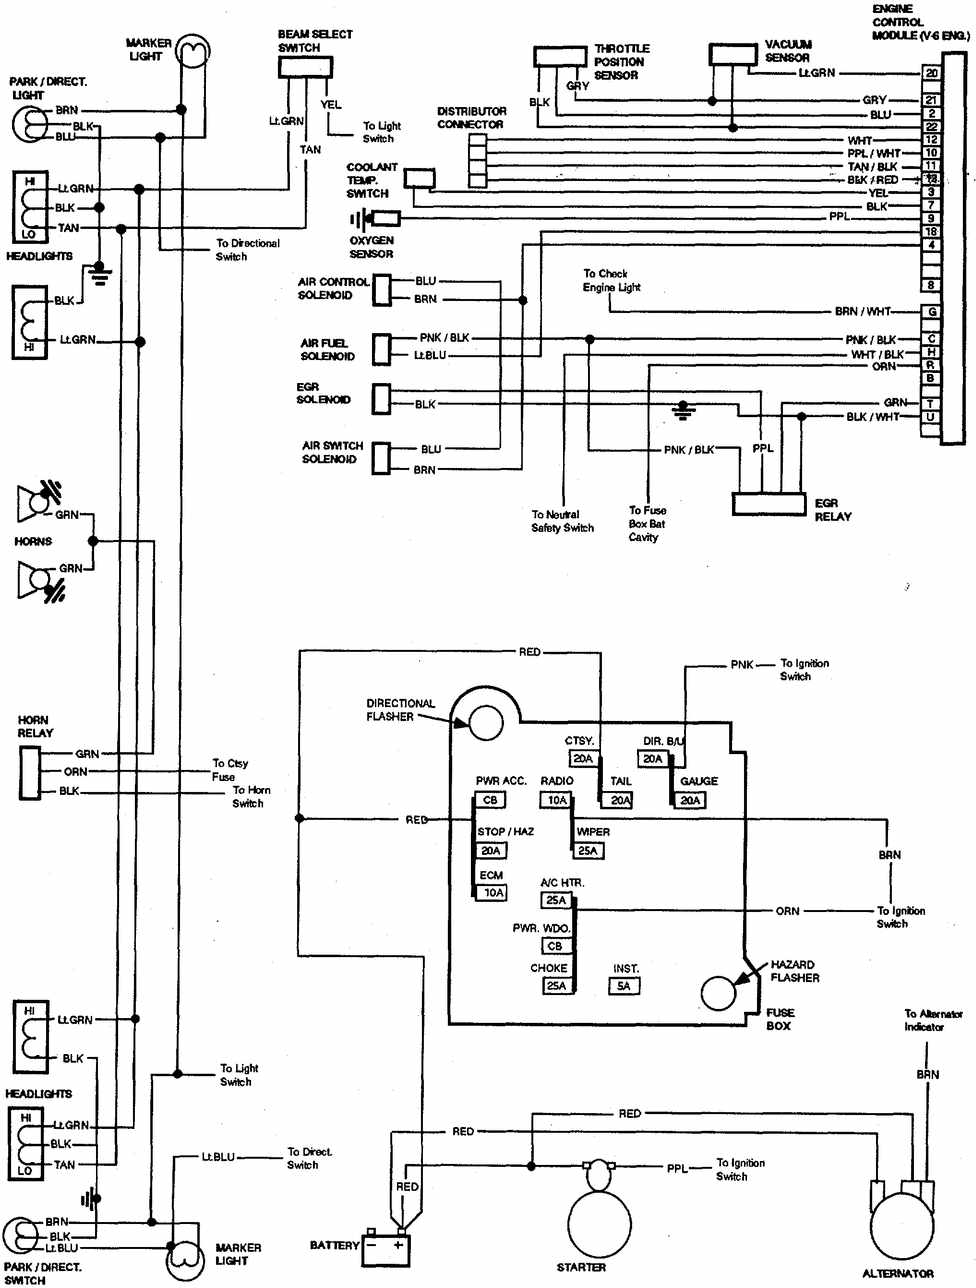 chevrolet v8 trucks 1981 1987 electrical wiring diagram 1964 impala ac wiring diagram free download 2013 chevy impala ac wiring diagram